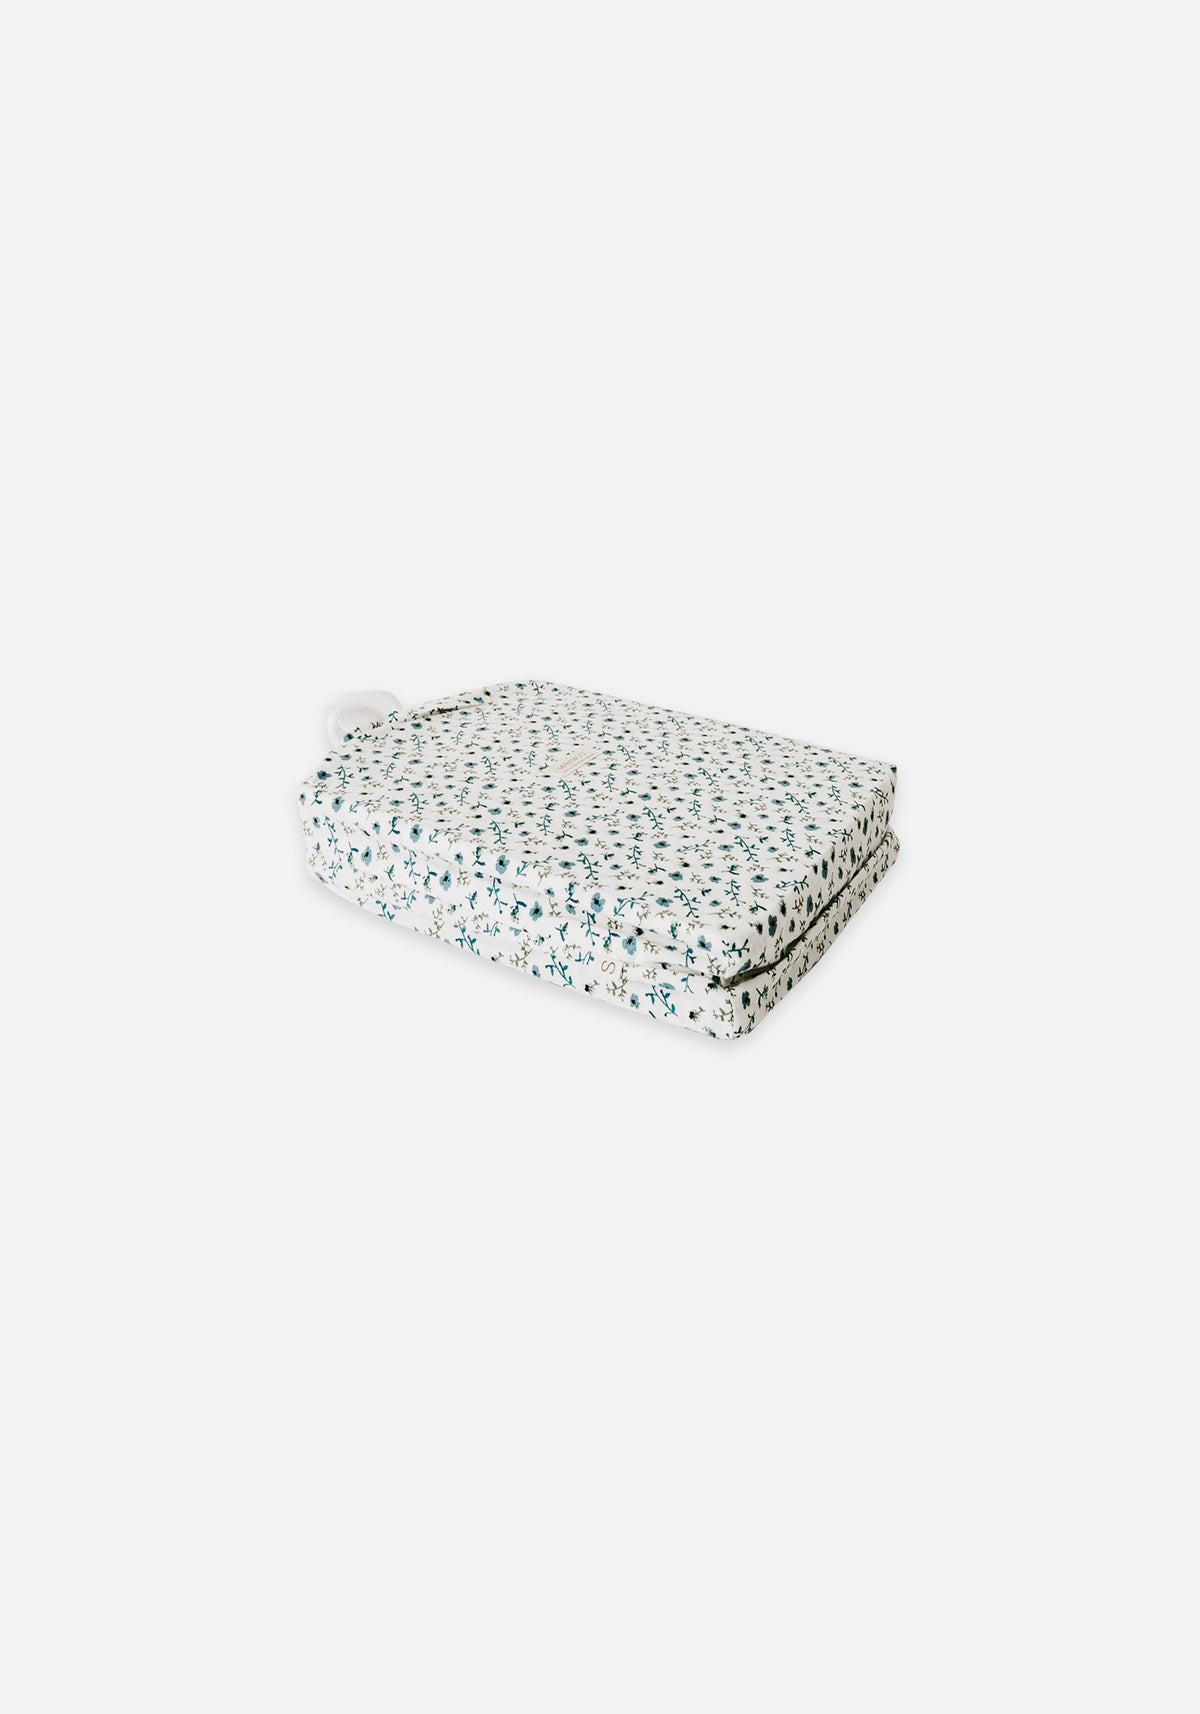 Miann & Co - Single Fitted Sheet - Forever Bloom